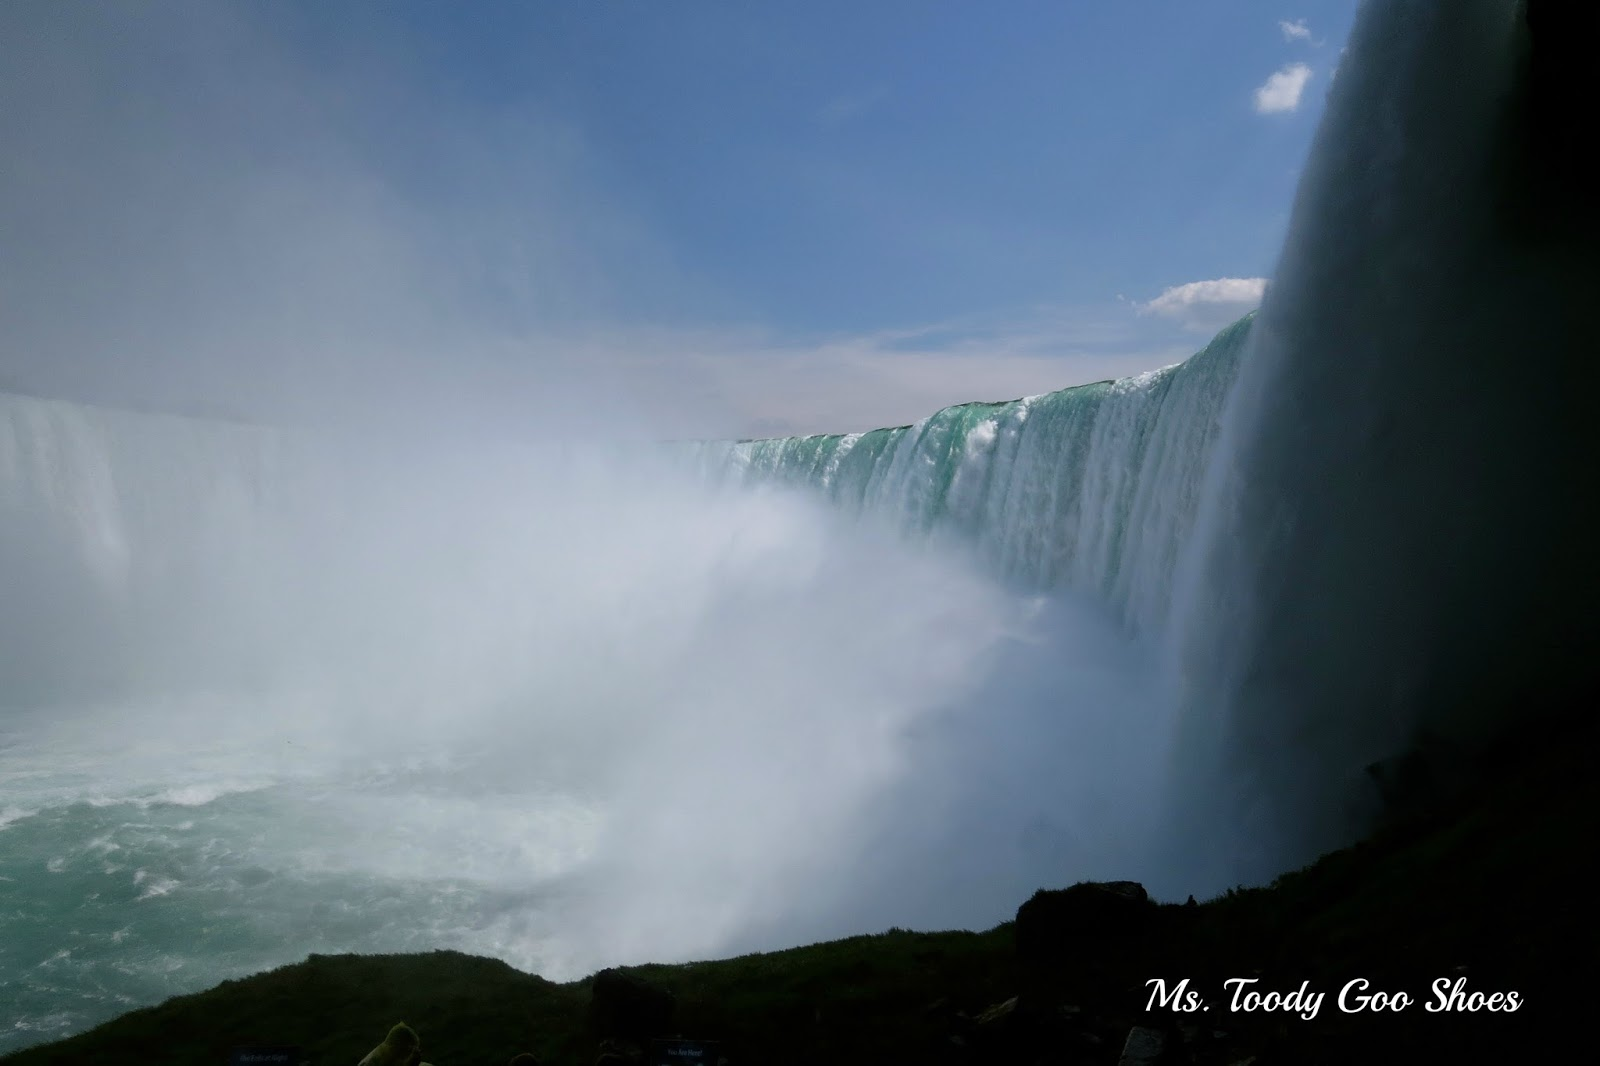 Niagara Falls - A Road Trip    by Ms. Toody Goo Shoes